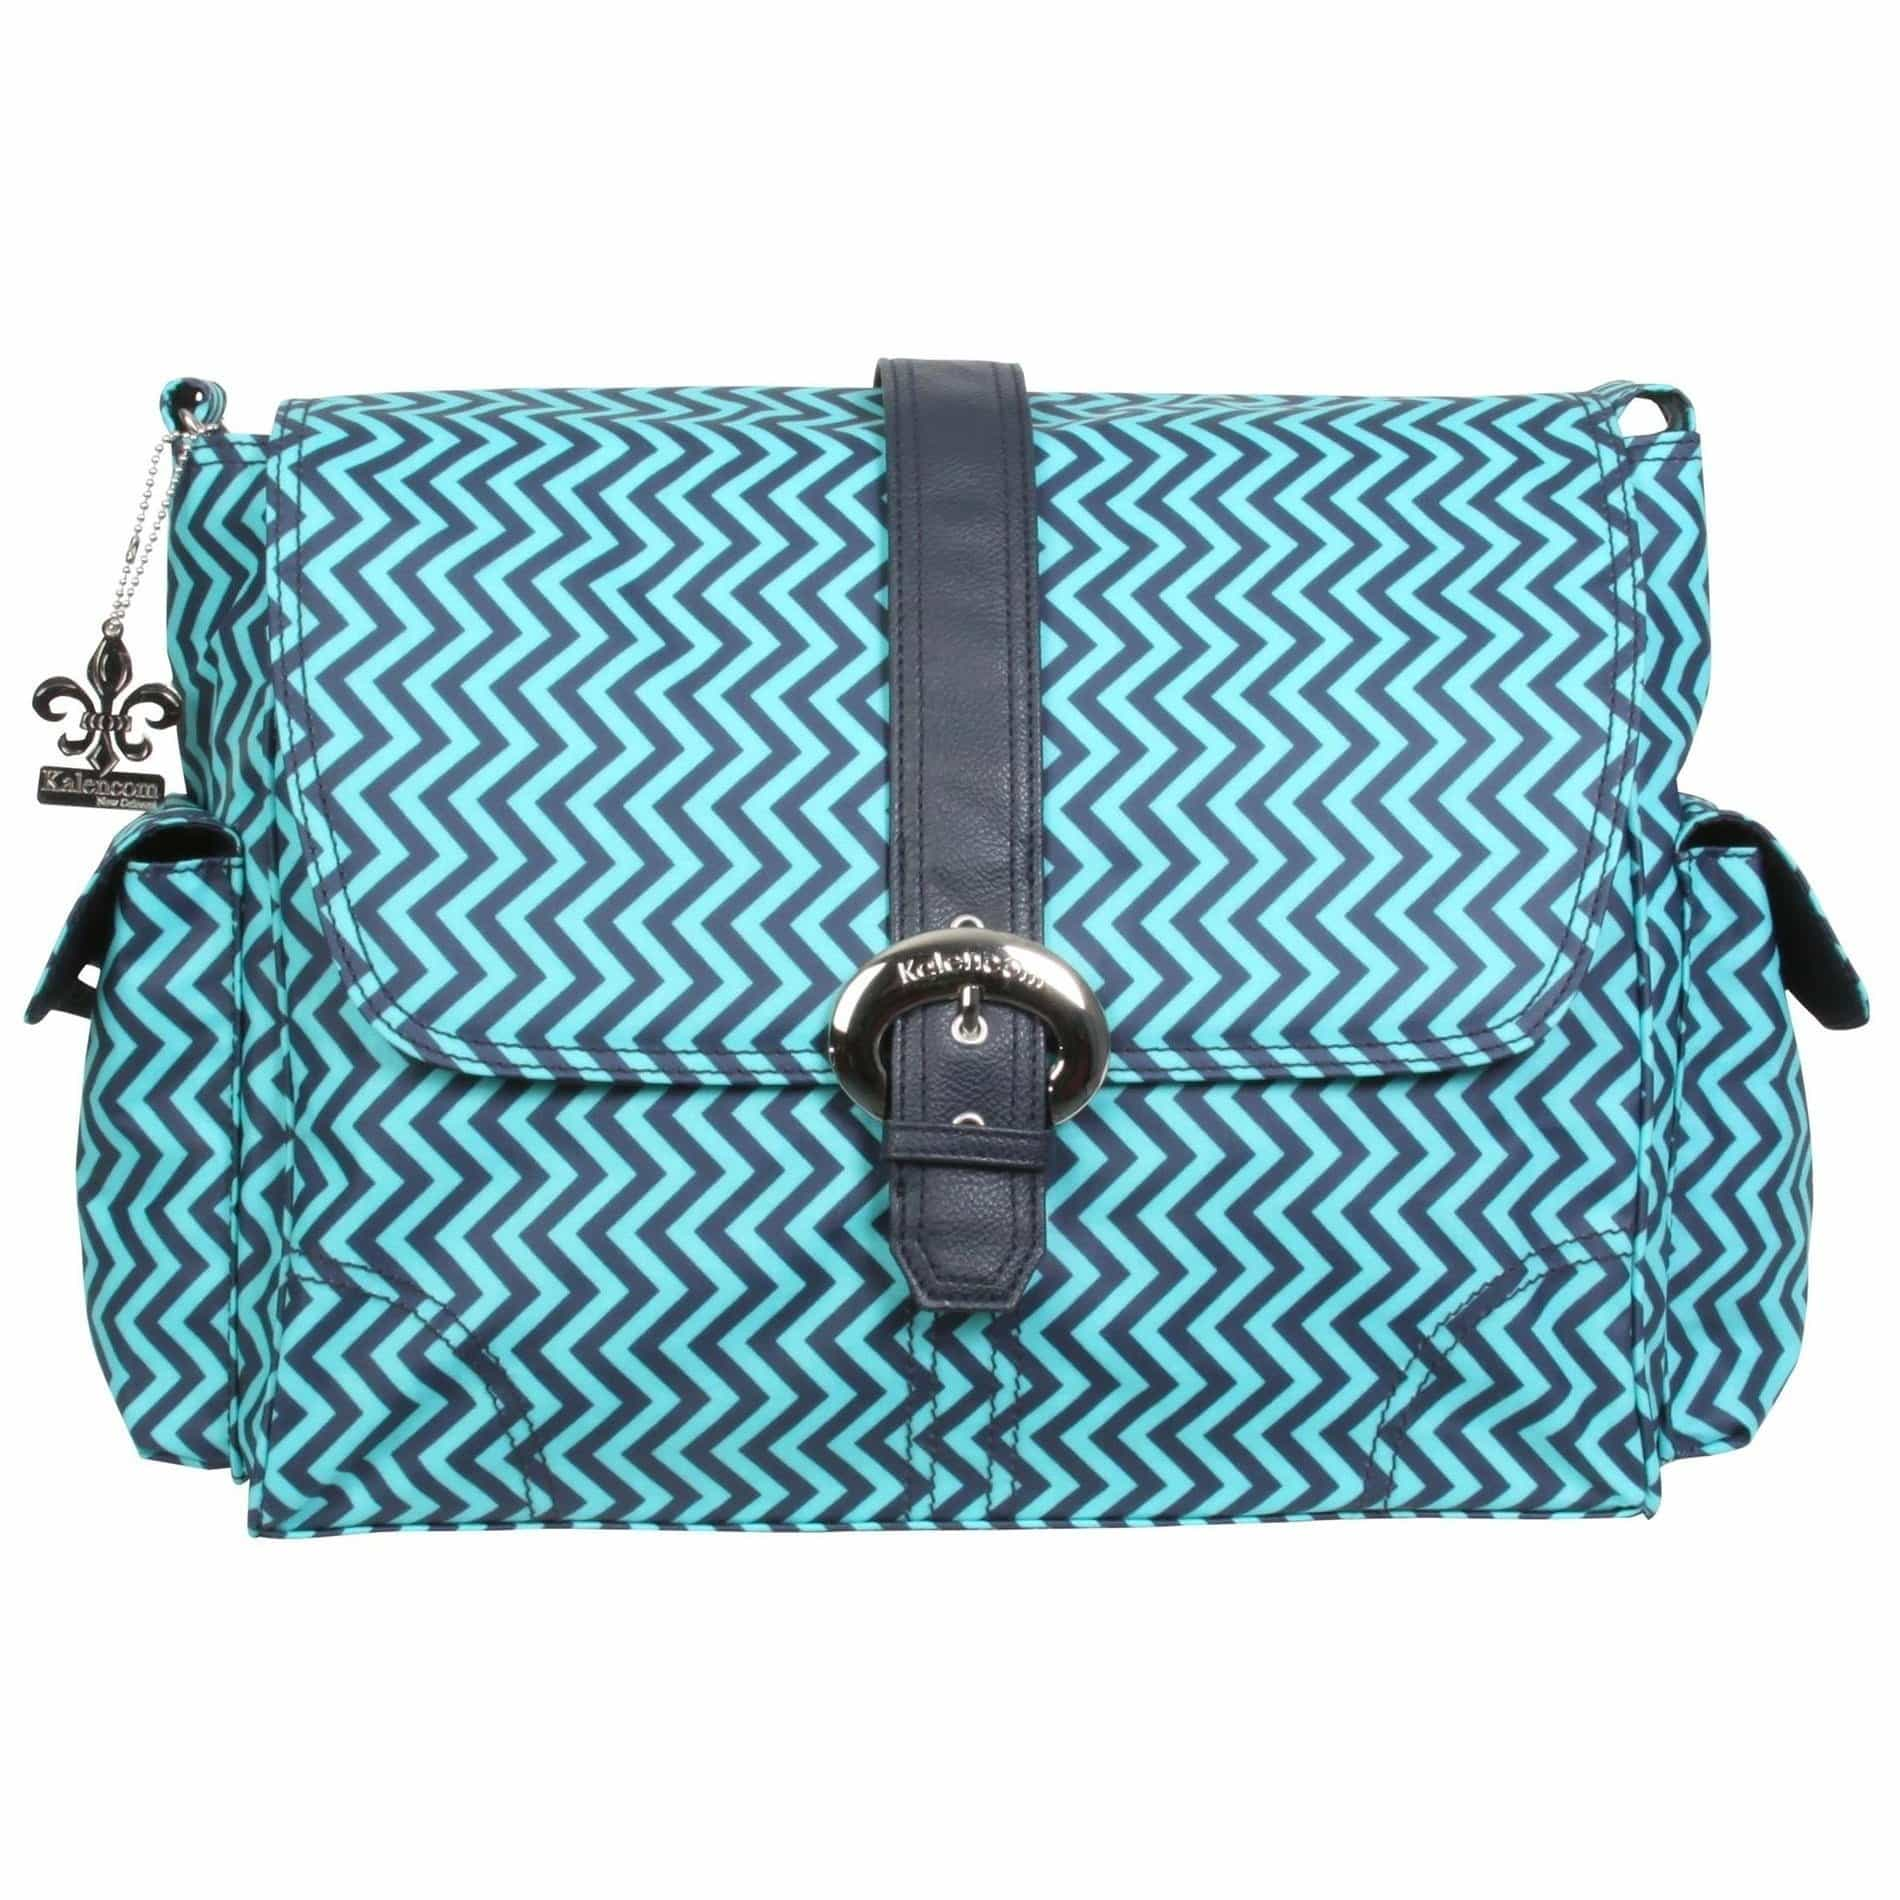 Wiggly Stripes - Ocean Matte Coated Buckle Diaper Bag | Style 2960 - Kalencom-Diaper Bags-Jack and Jill Boutique